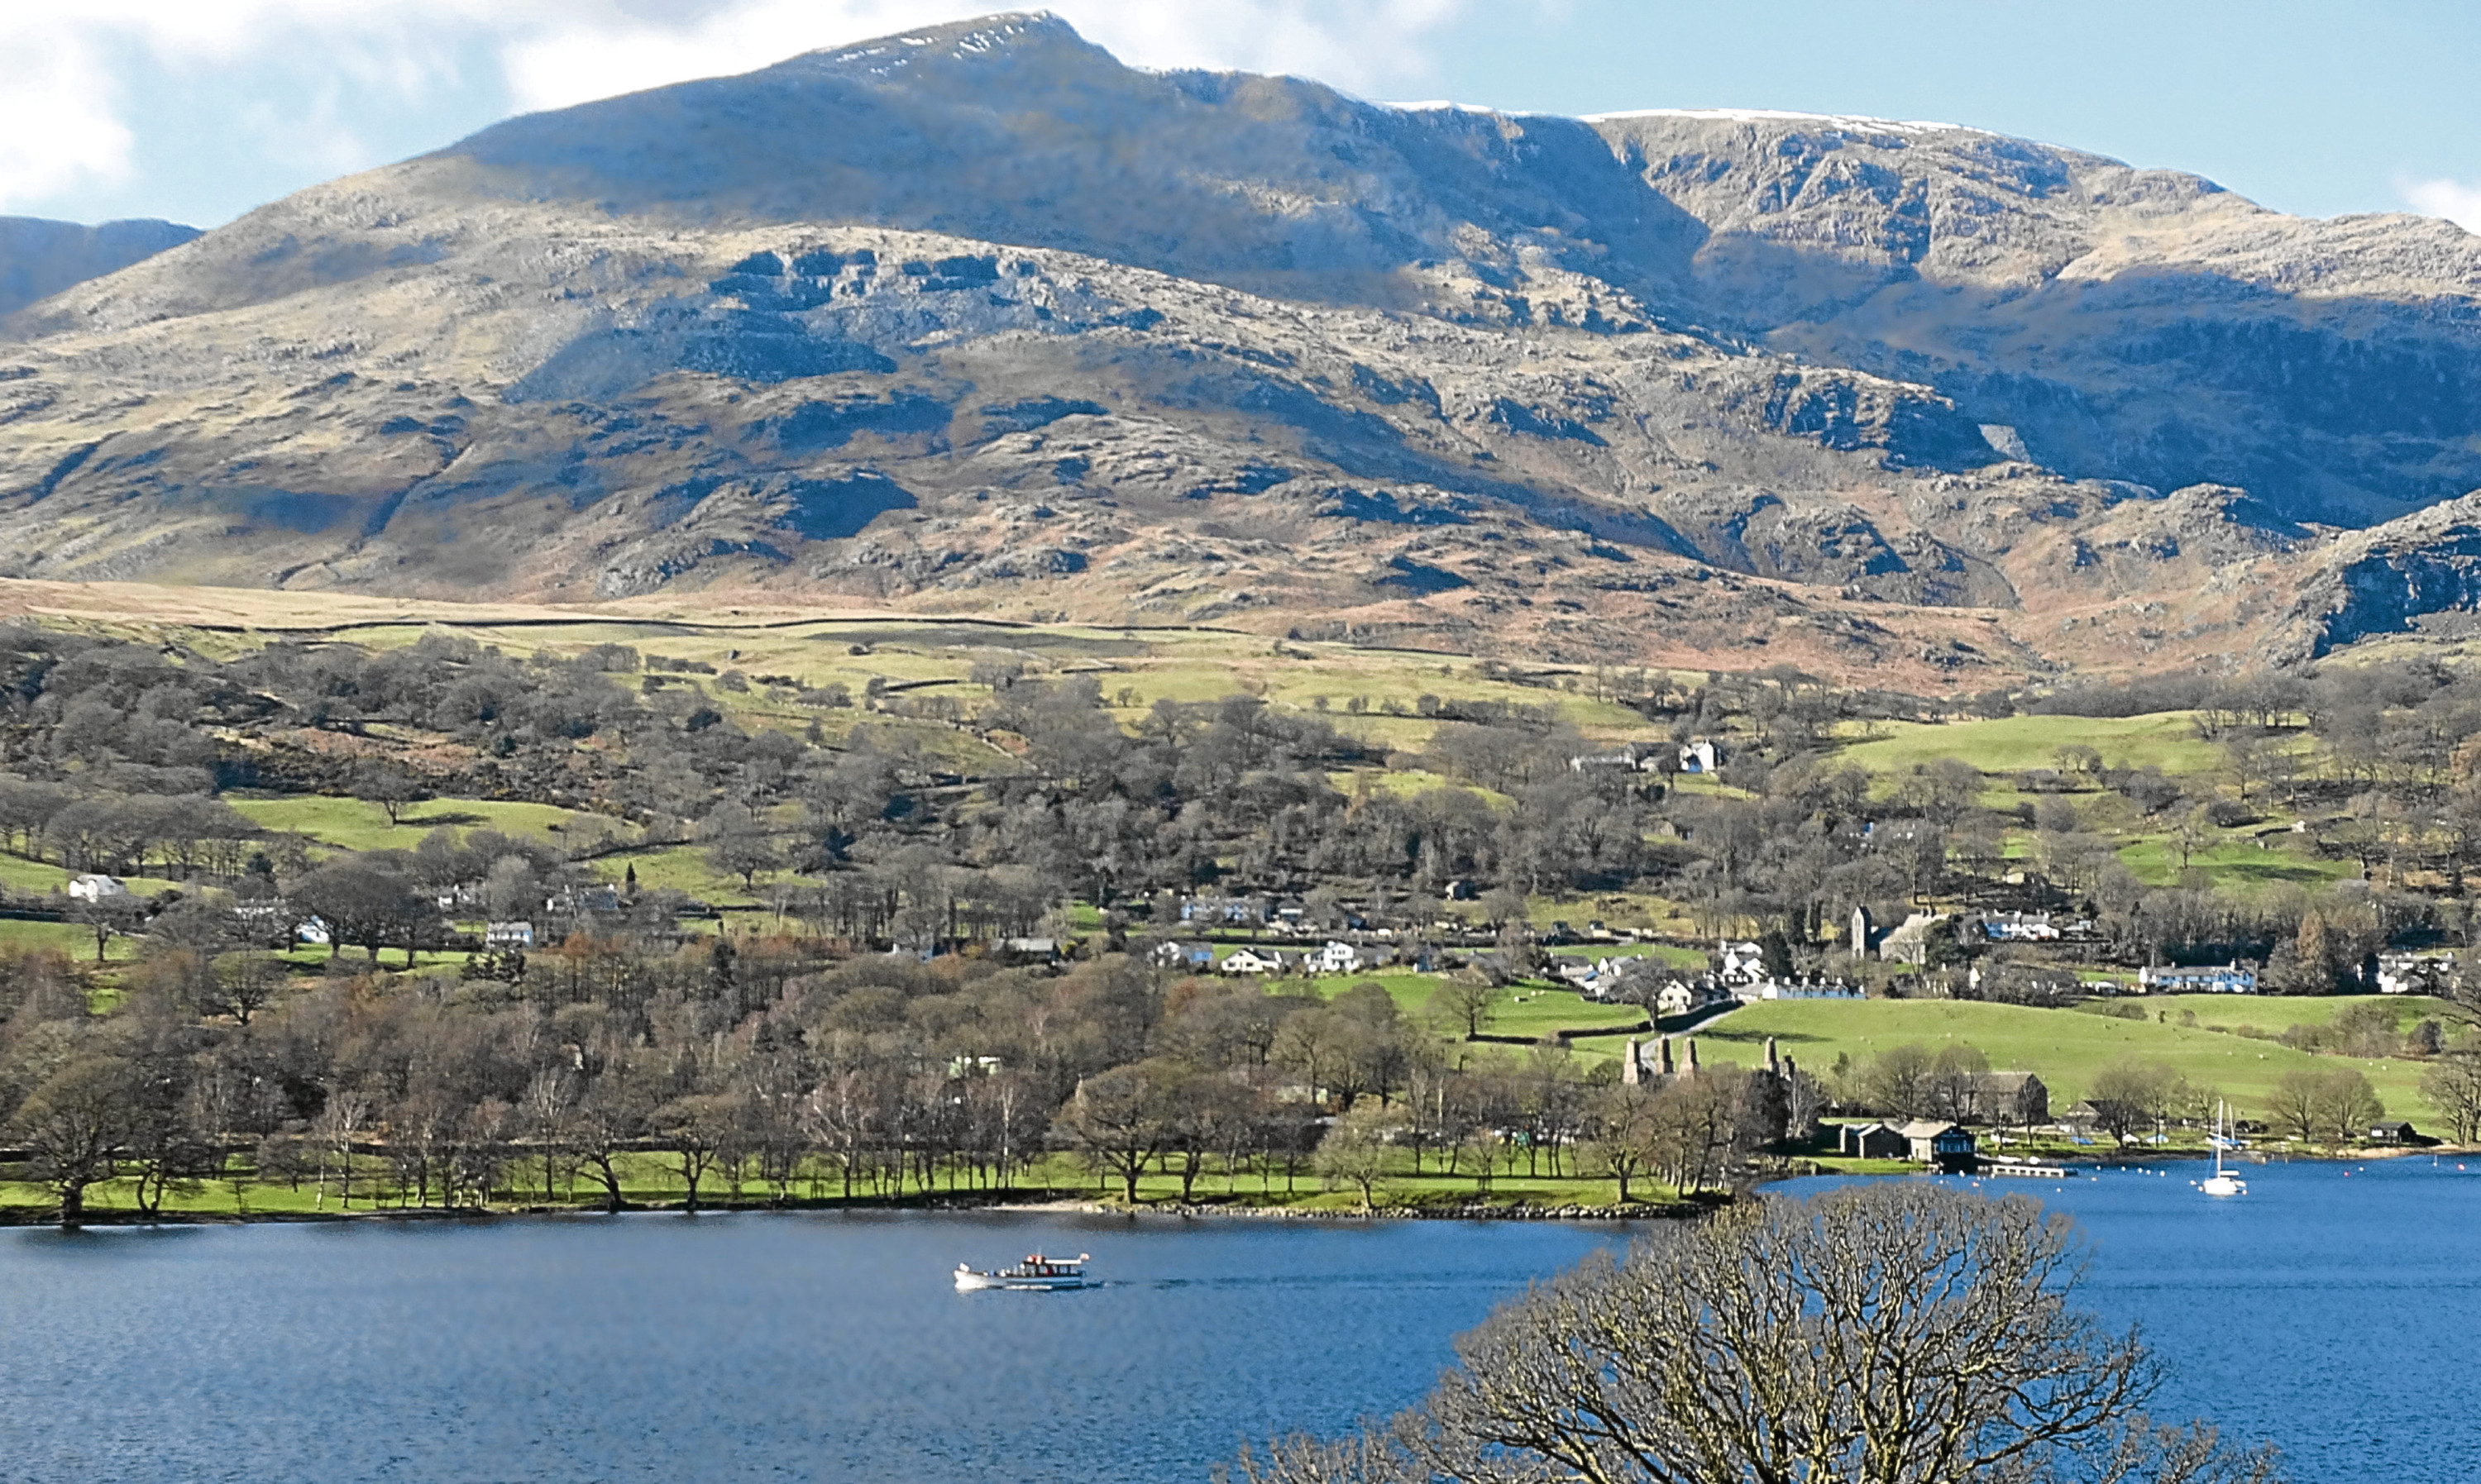 Coniston Old Man in the Lake District, with an eyebrow of snow along the summit.